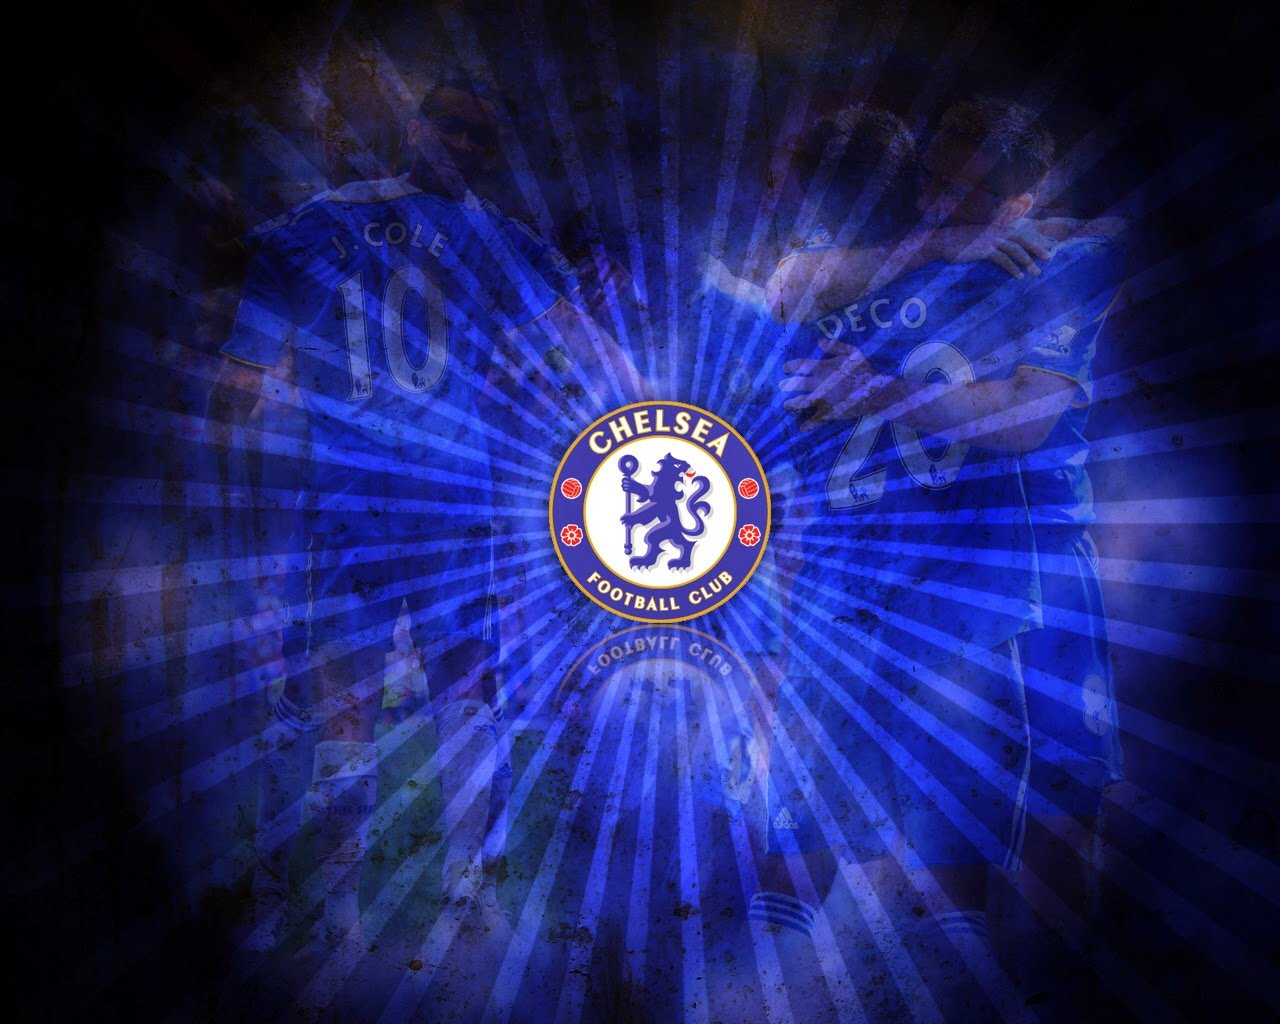 Chelsea Football Club Wallpaper Football Wallpaper HD 1280x1024